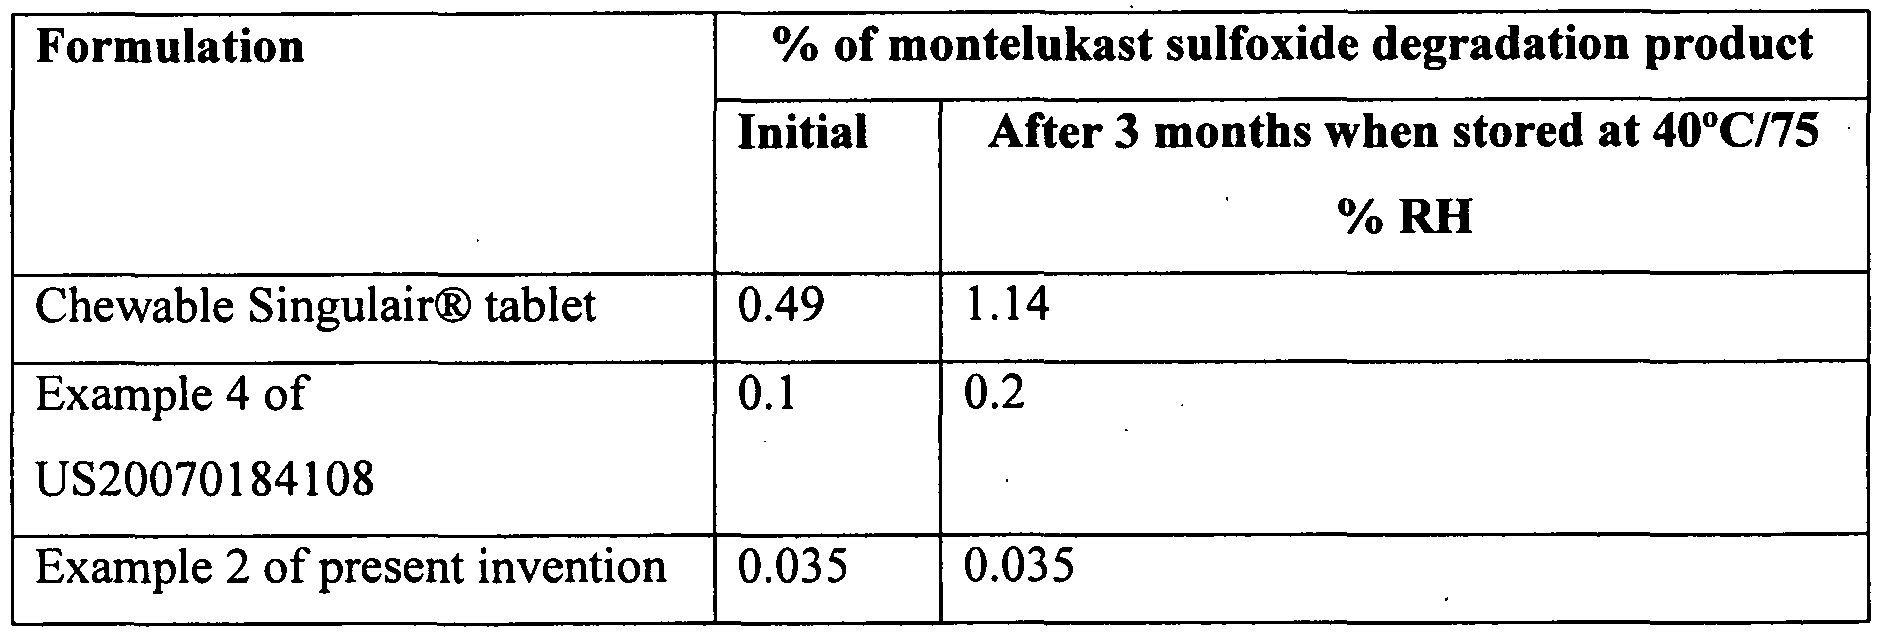 Cost for singulair 5mg.doc - Figure Imgf000027_0002